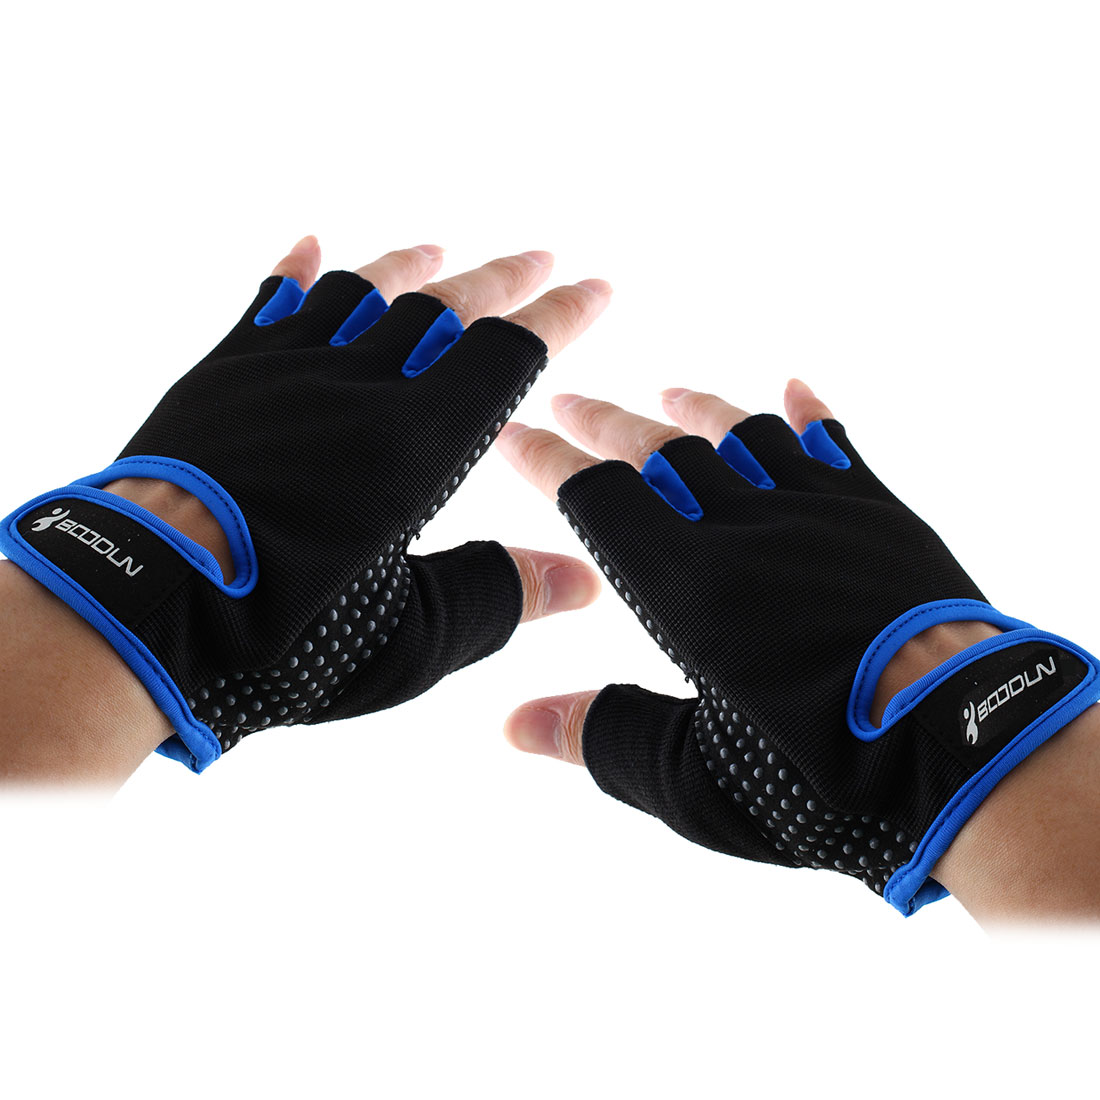 BOODUN Authorized Adult Unisex Spandex Adjustable Sports Training Workout Mittens Fitness Gloves Blue S Pair